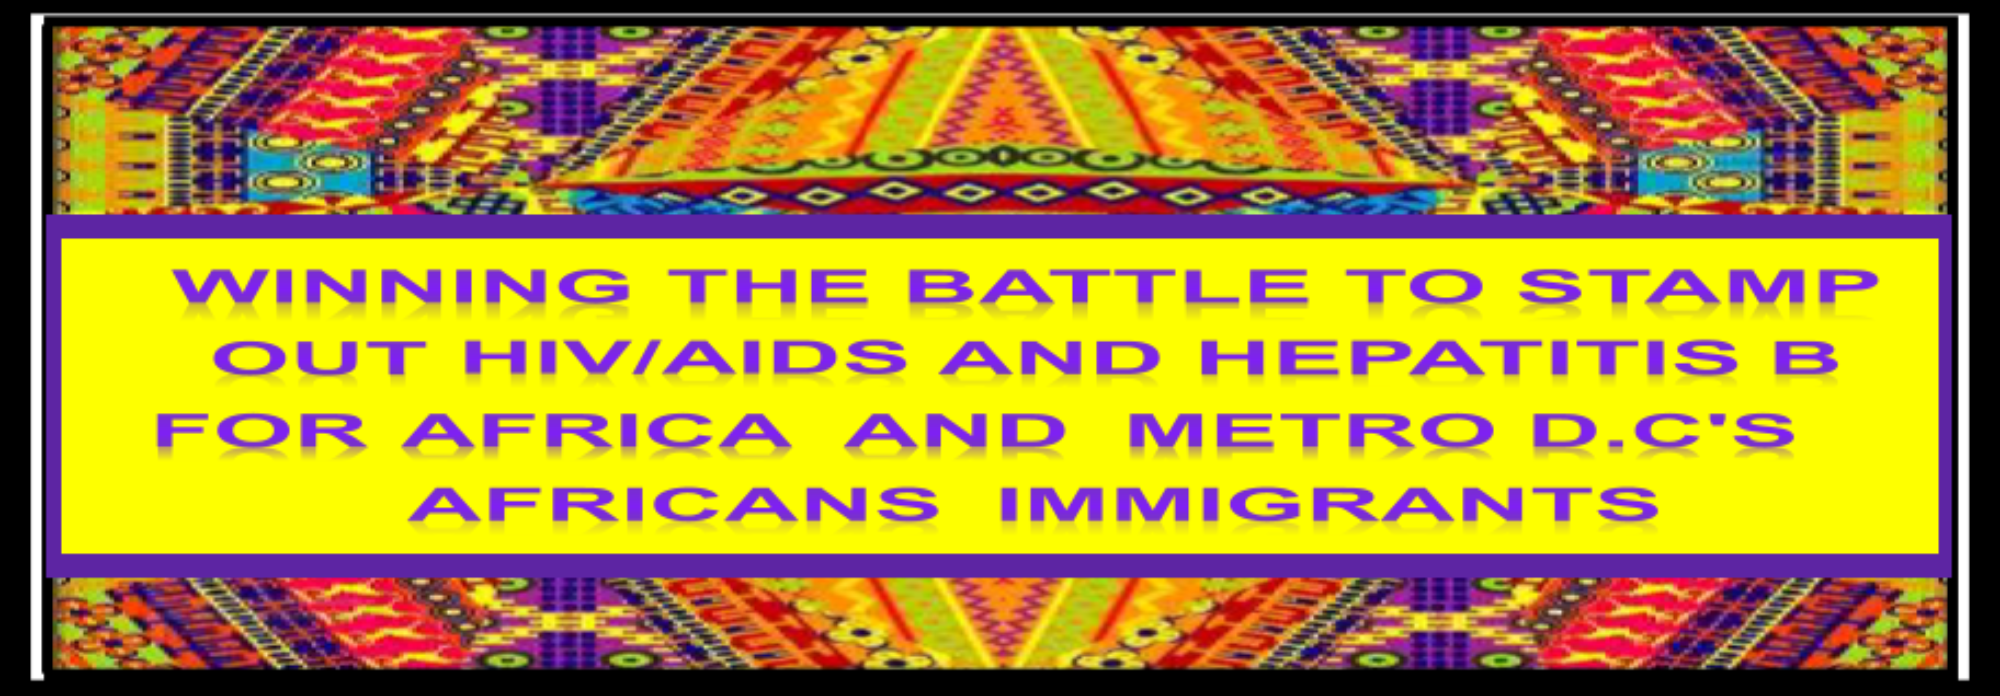 Winning the battle to stamp out HIV/AIDS and hepatitis B for DC's African Immigrants